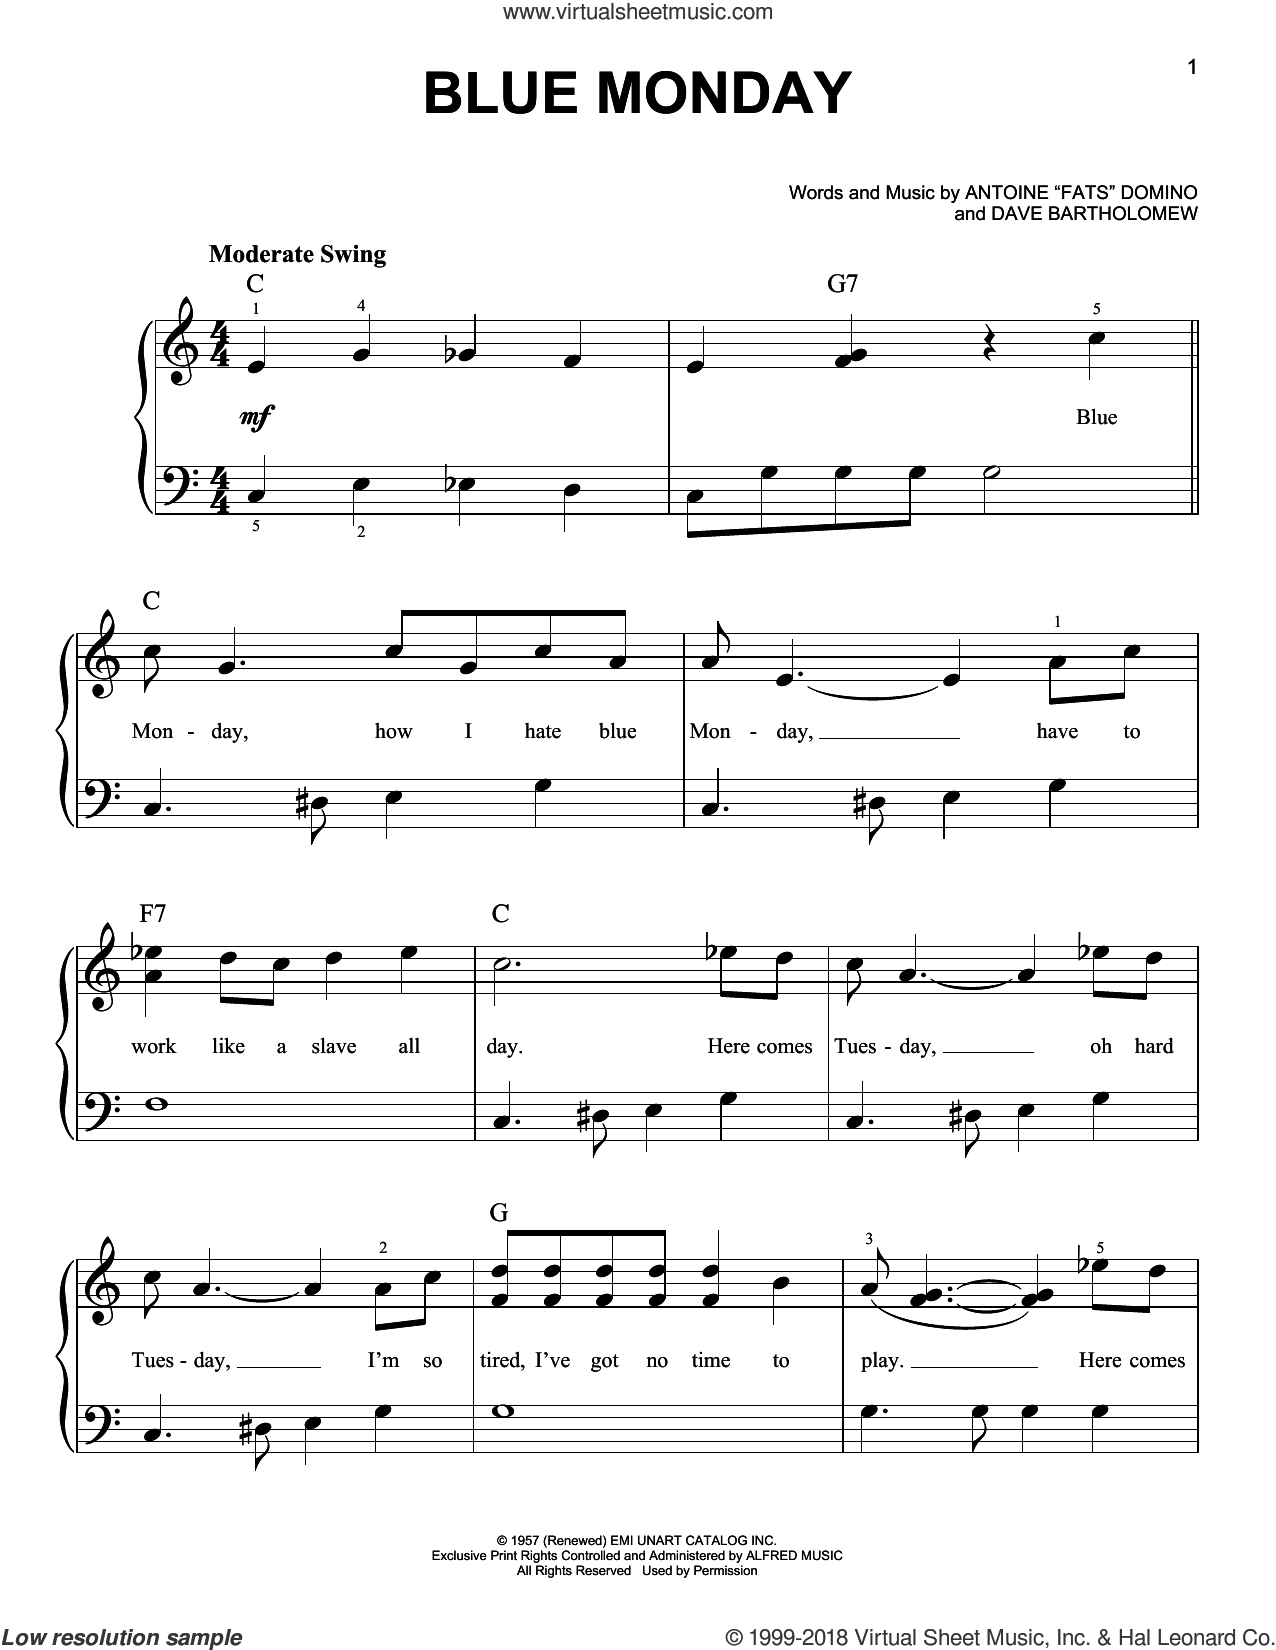 Blue Monday sheet music for piano solo by Dave Bartholomew, beginner skill level